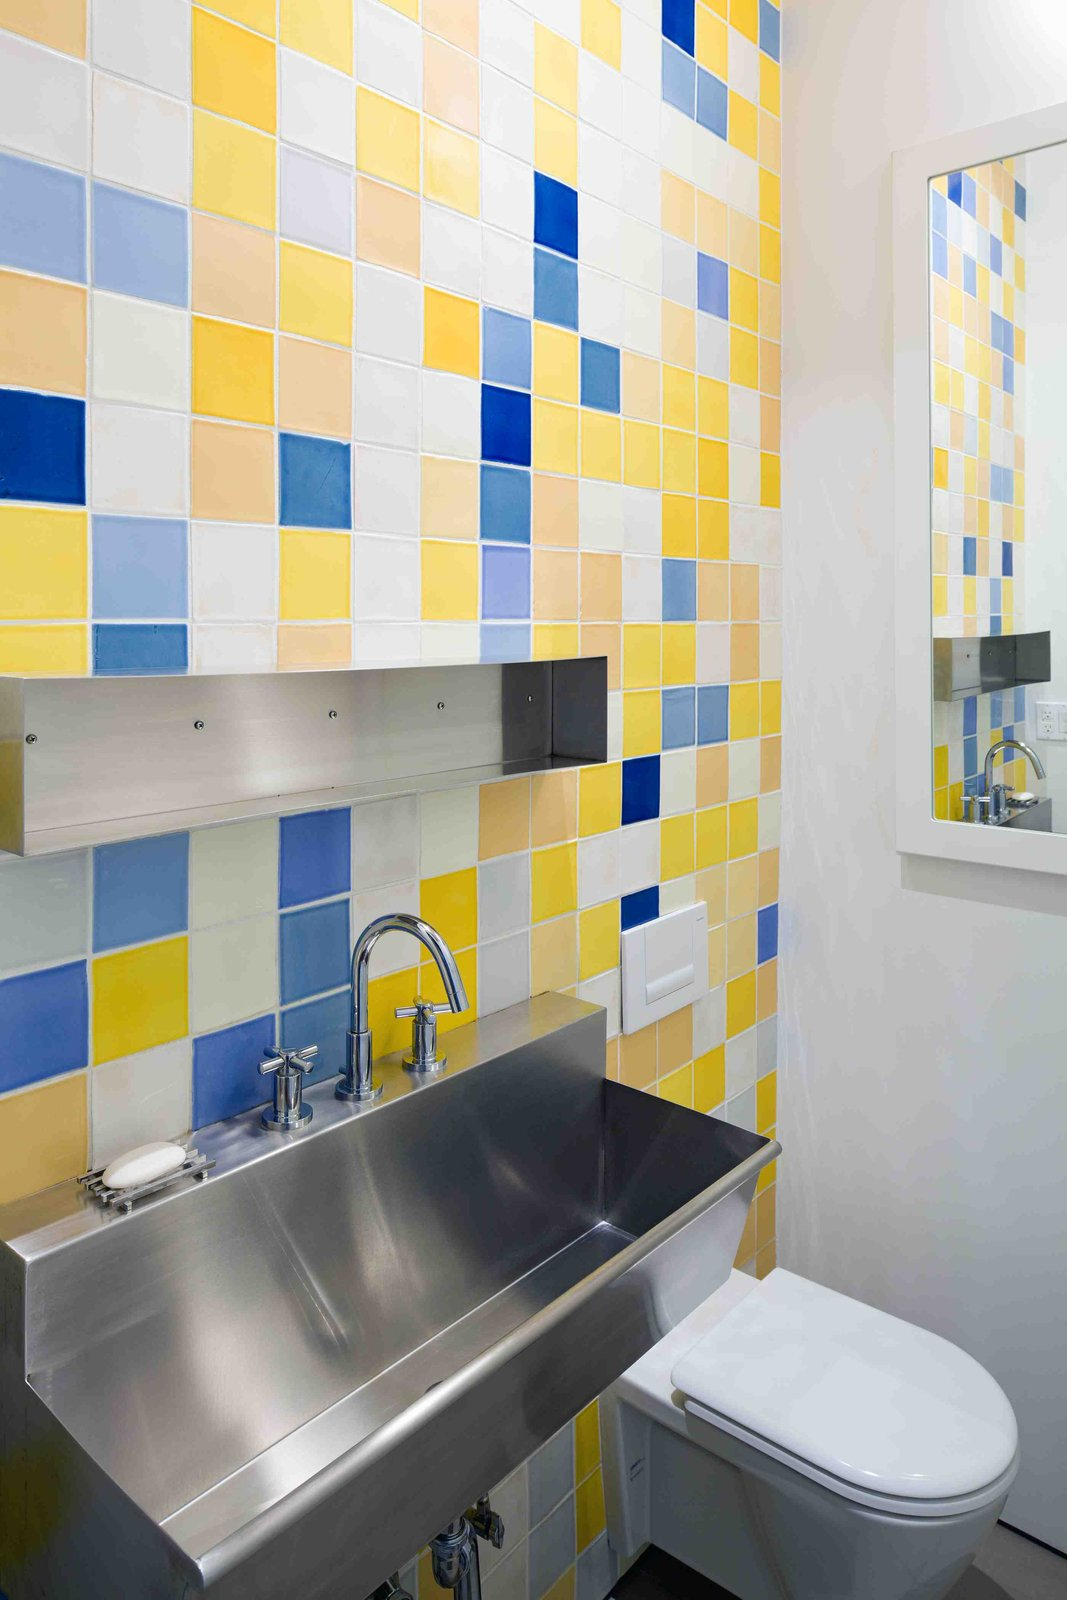 The bathroom tiles were a point of contention: Bartlett wanted Mexican tiles, while Berridge's design favored a bare-bones, Donald Judd-like approach in keeping with the warehouse experience.  The compromise was that he used industrial sinks and designed the stainless-steel hardware to be as utilitarian as possible, and commissioned a set of plain tiles with a strict color palette of five yellows, five blues and five whites, derived from Bartlett's work. She then arranged them on one wall as she would one of her installations. That way, both upstairs and downstairs bathrooms have Jennifer Bartlett originals on the wall.